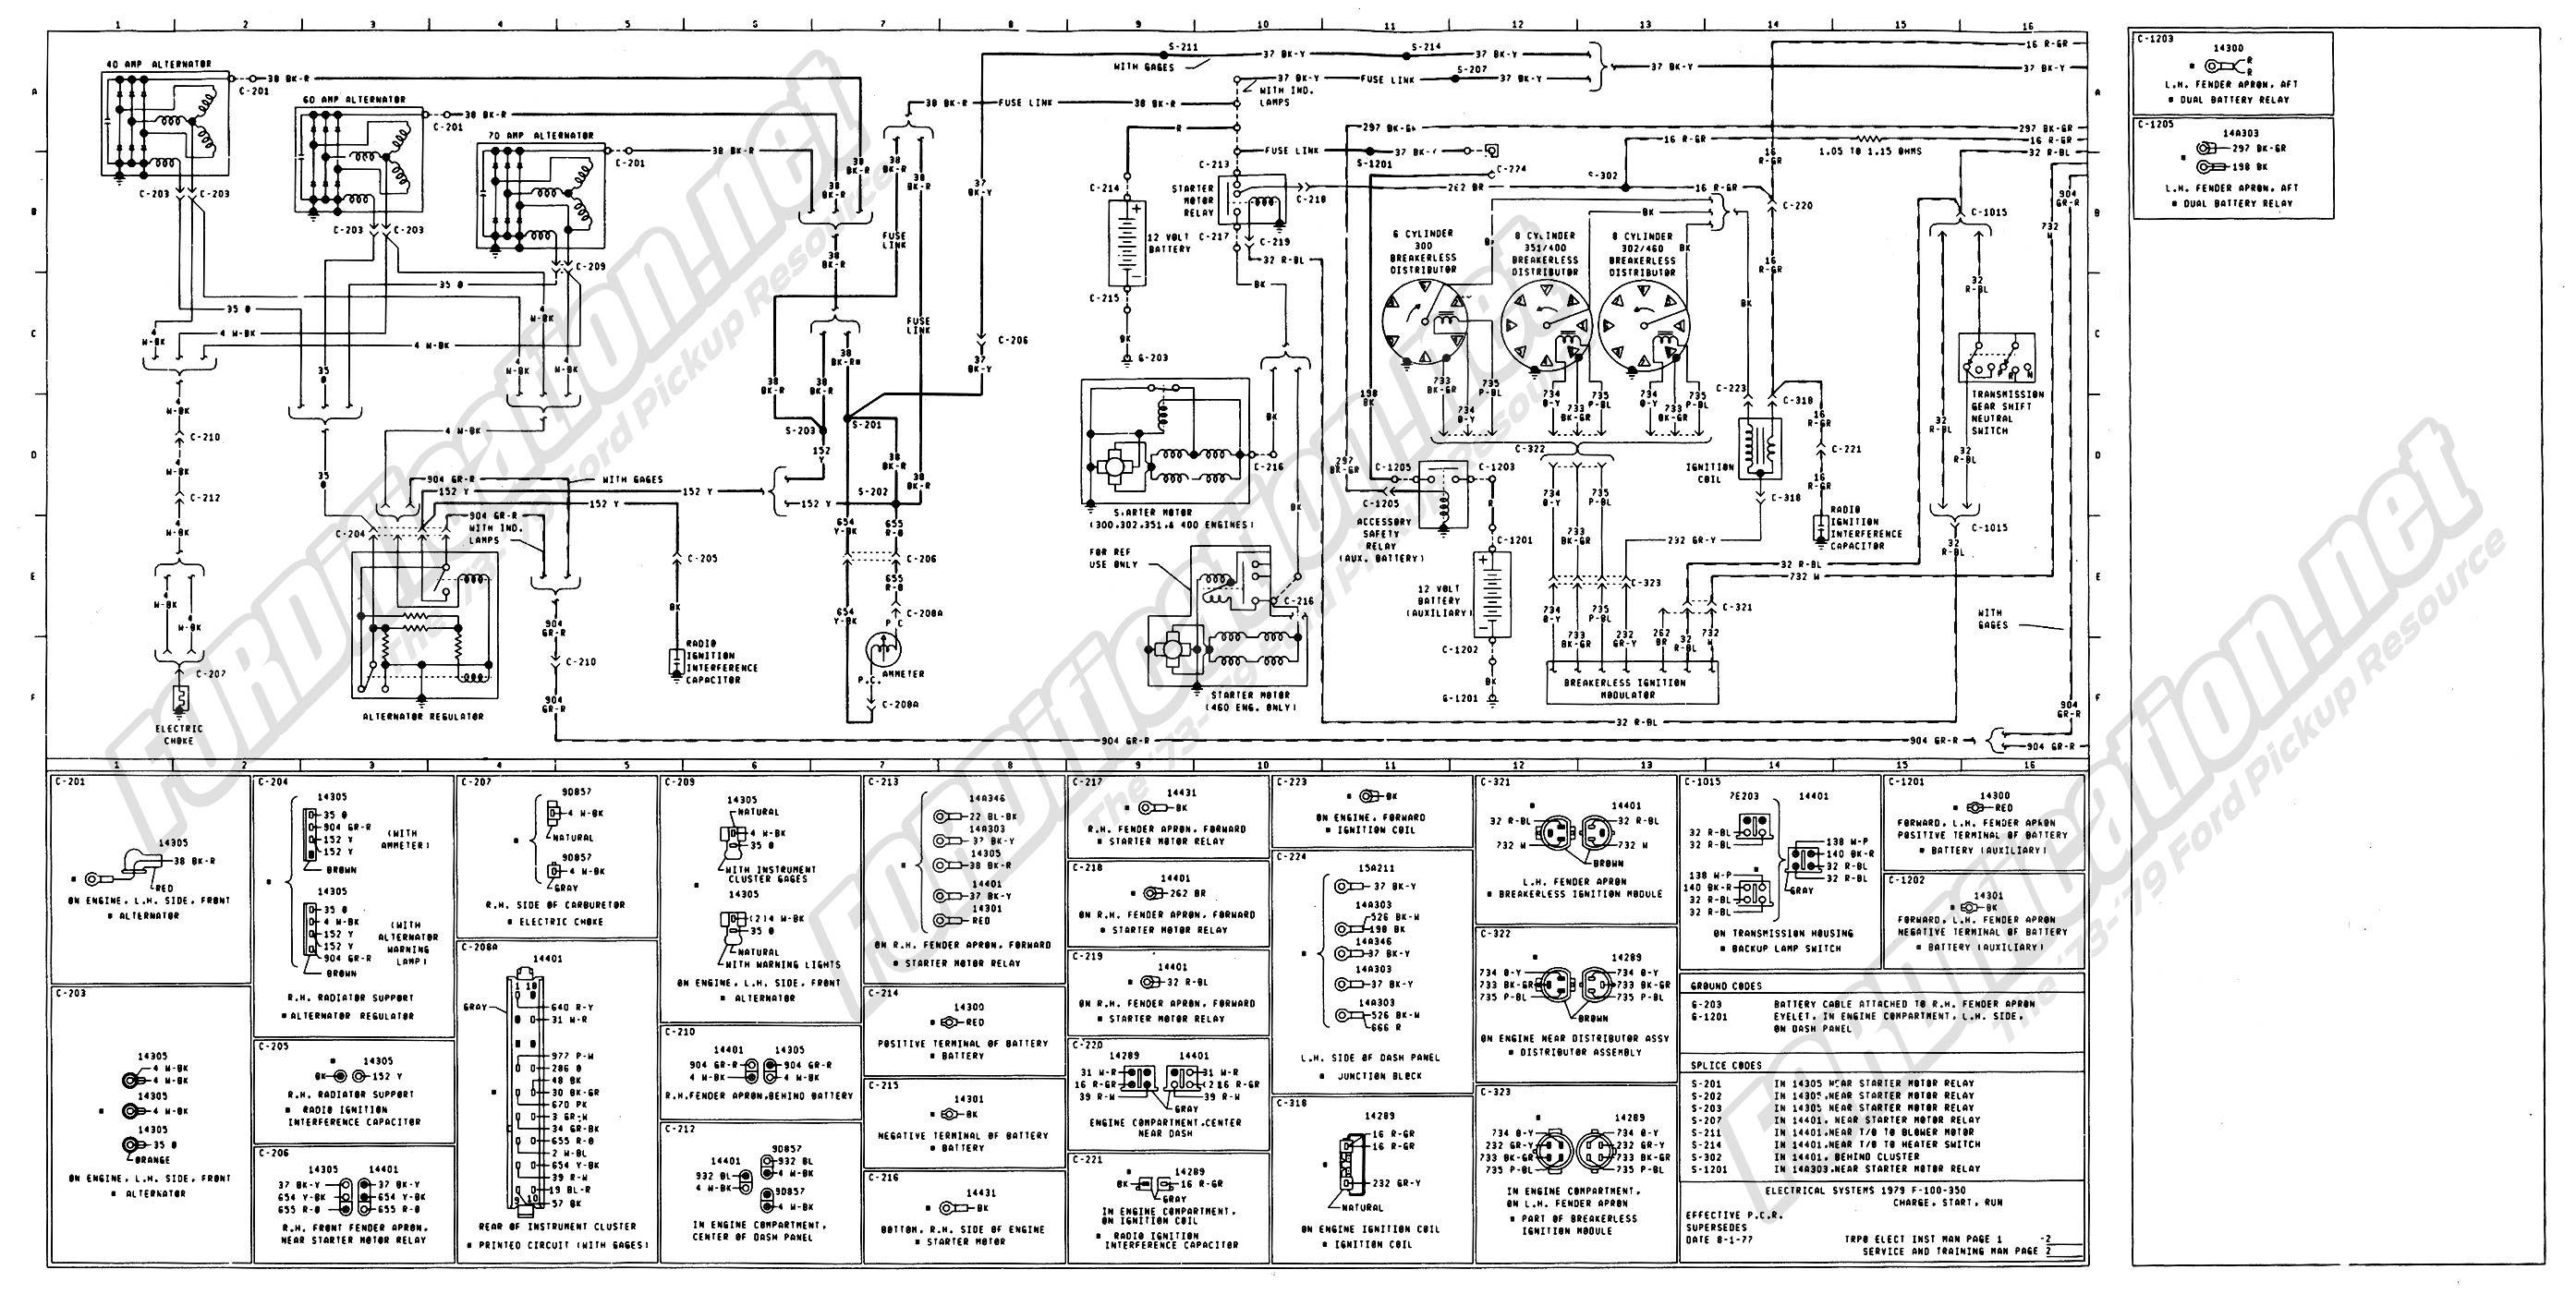 1973 1979 ford truck wiring diagrams schematics fordification net rh fordification net Ford 460 Distributor Diagram Ford Ignition Wiring